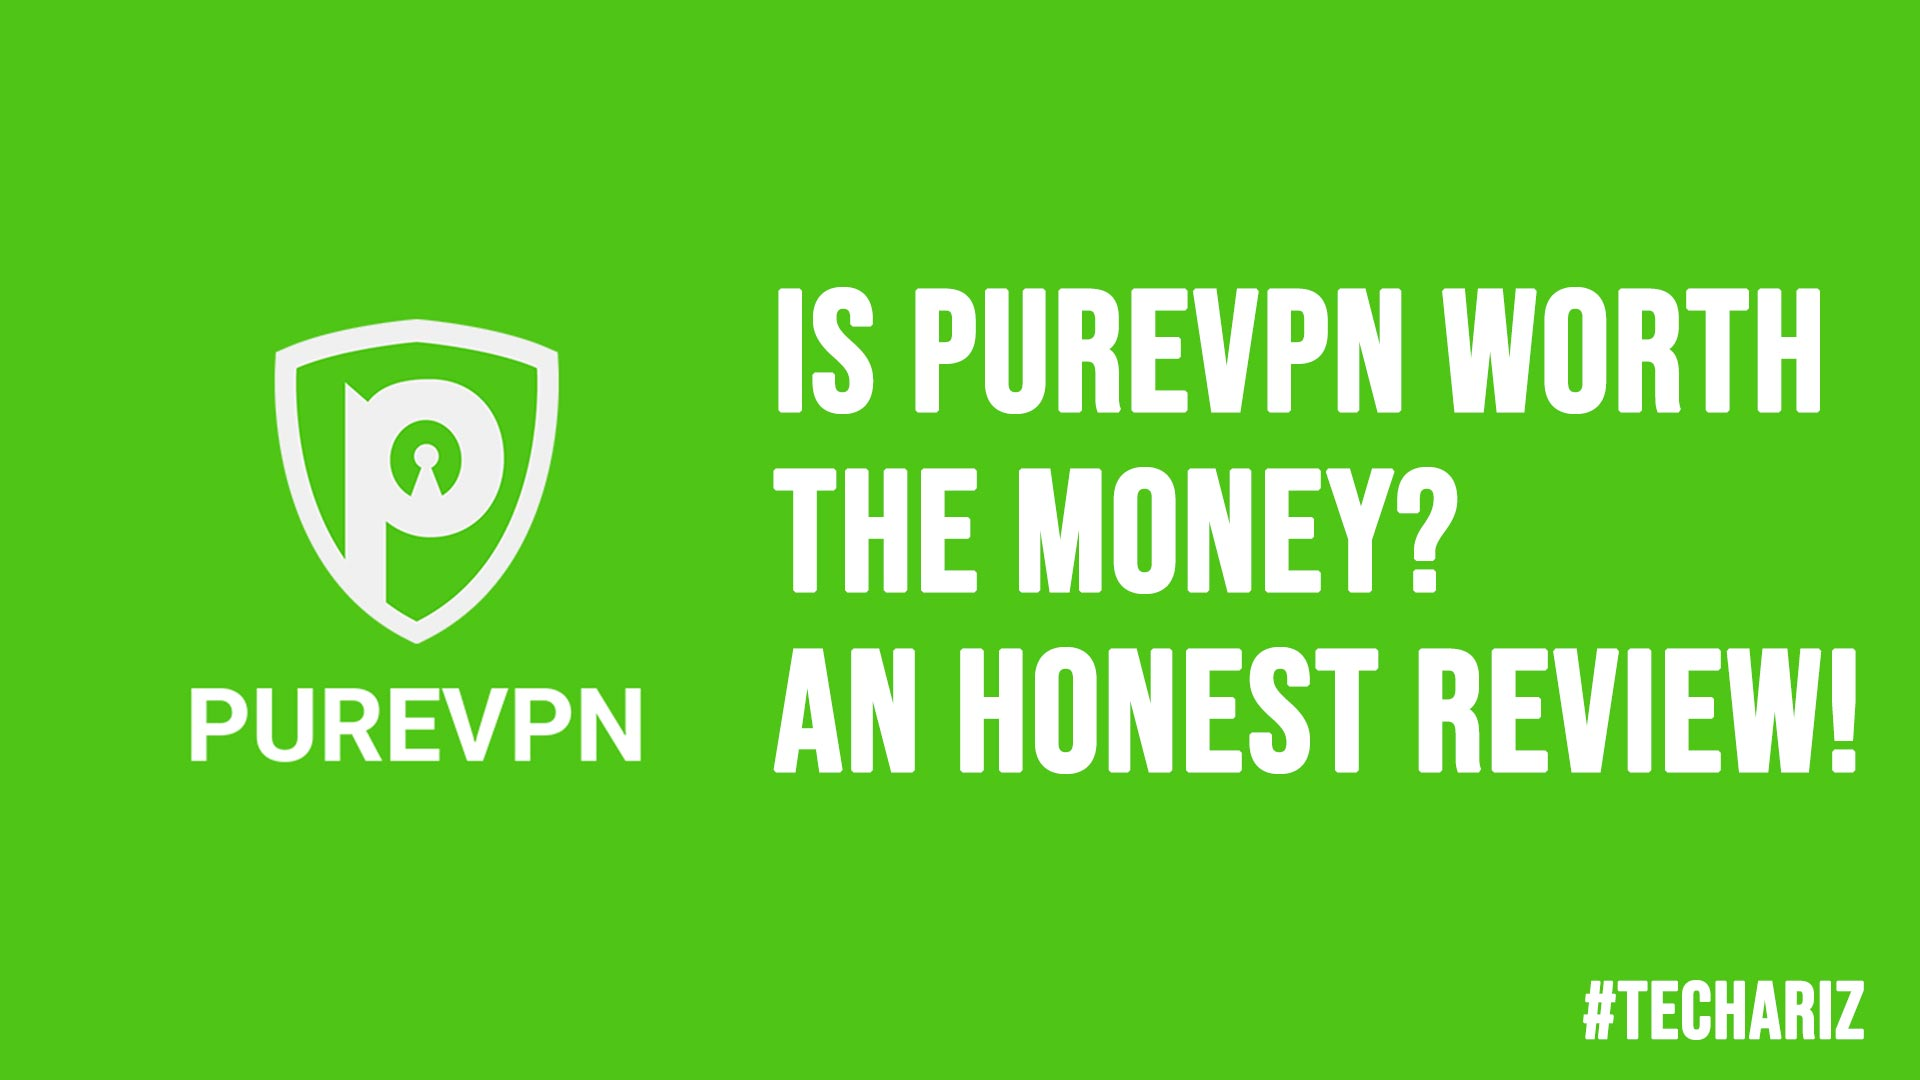 Is PureVPN Worth the Money An Honest Review